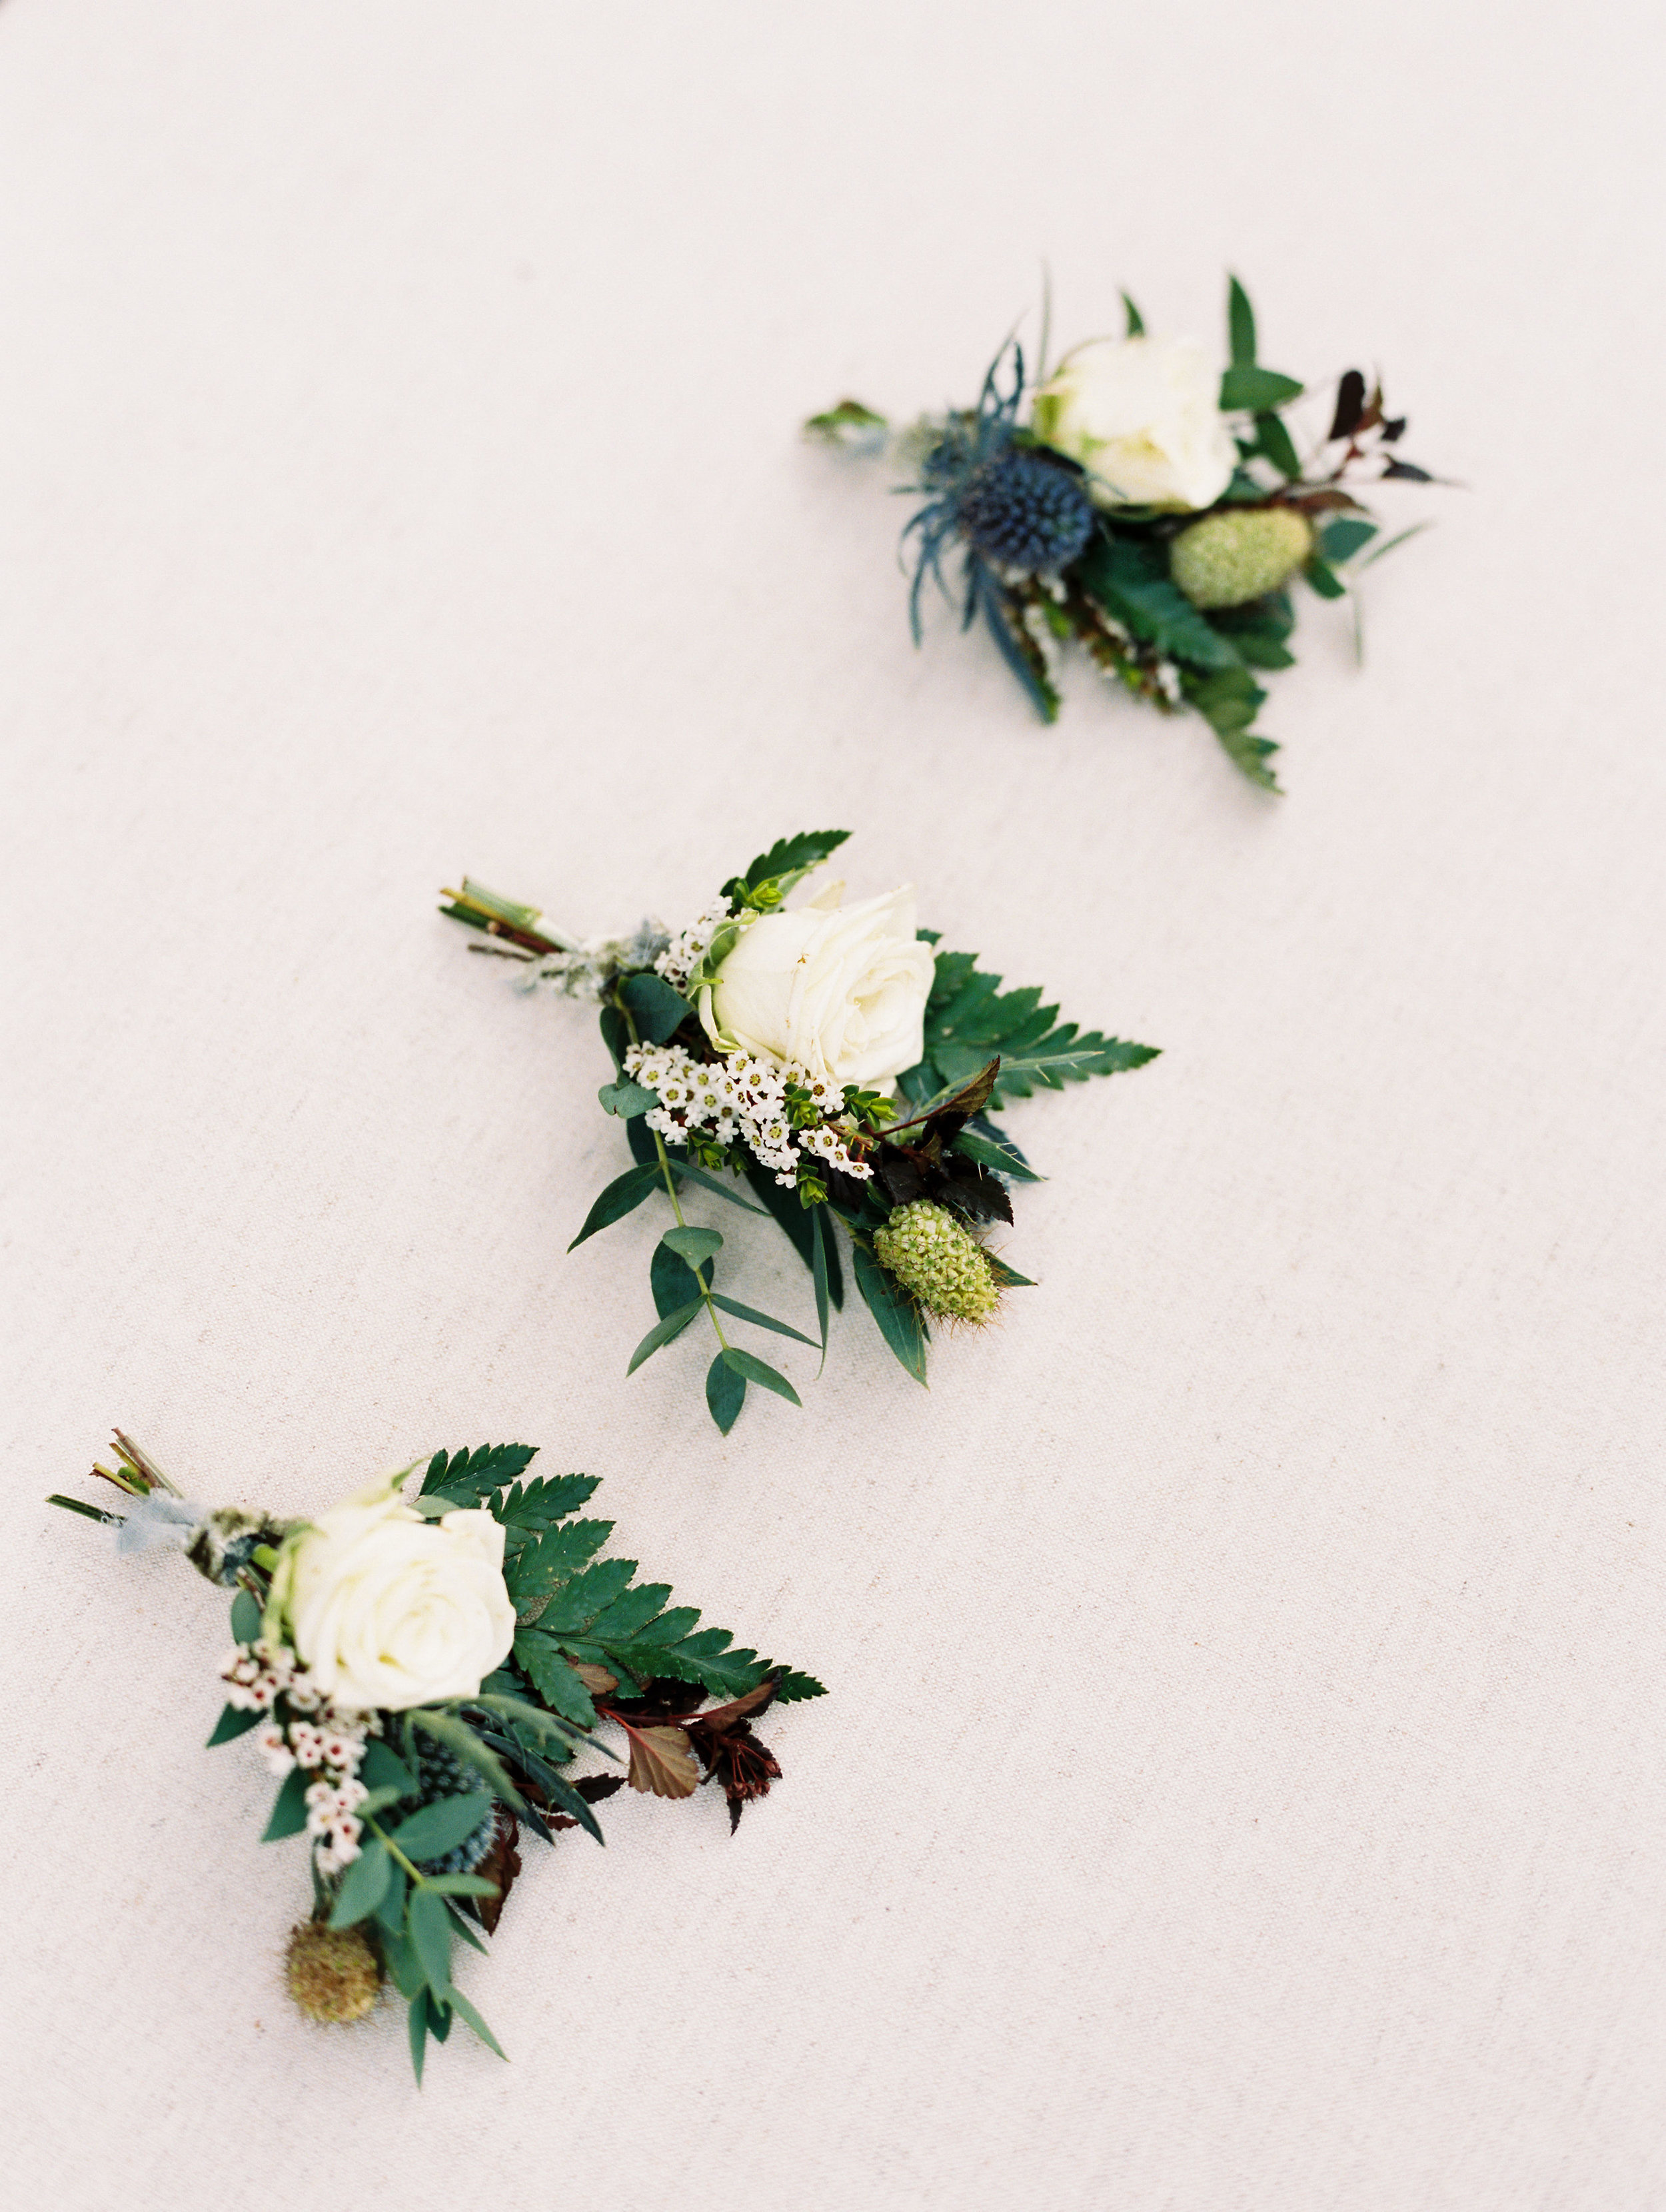 Texture boutonnieres with blue thistles and greenery. Destination Wedding Floral Design